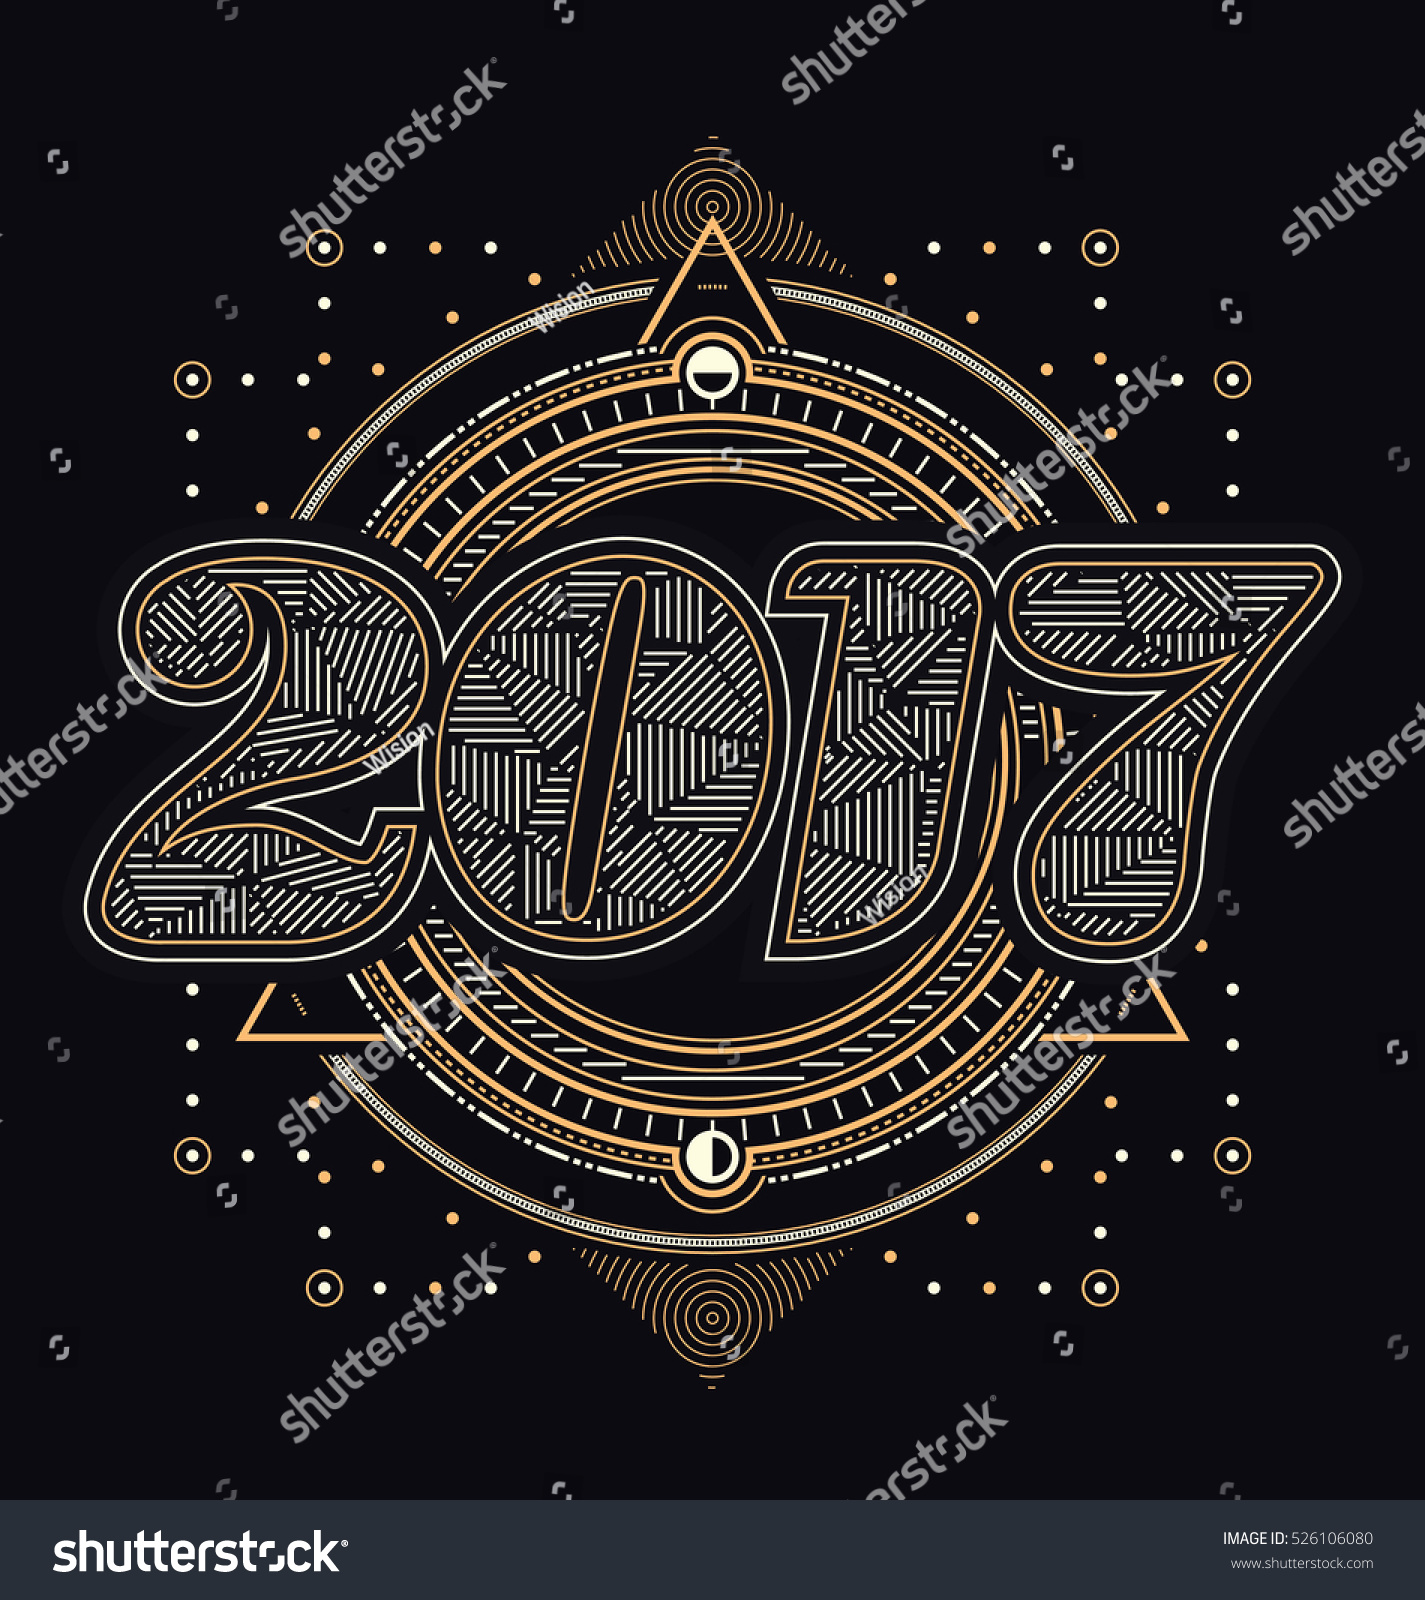 2017 calligraphic new year greeting design stock vector 526106080 2017 calligraphic new year greeting design sacred style gold and white lines design on kristyandbryce Choice Image